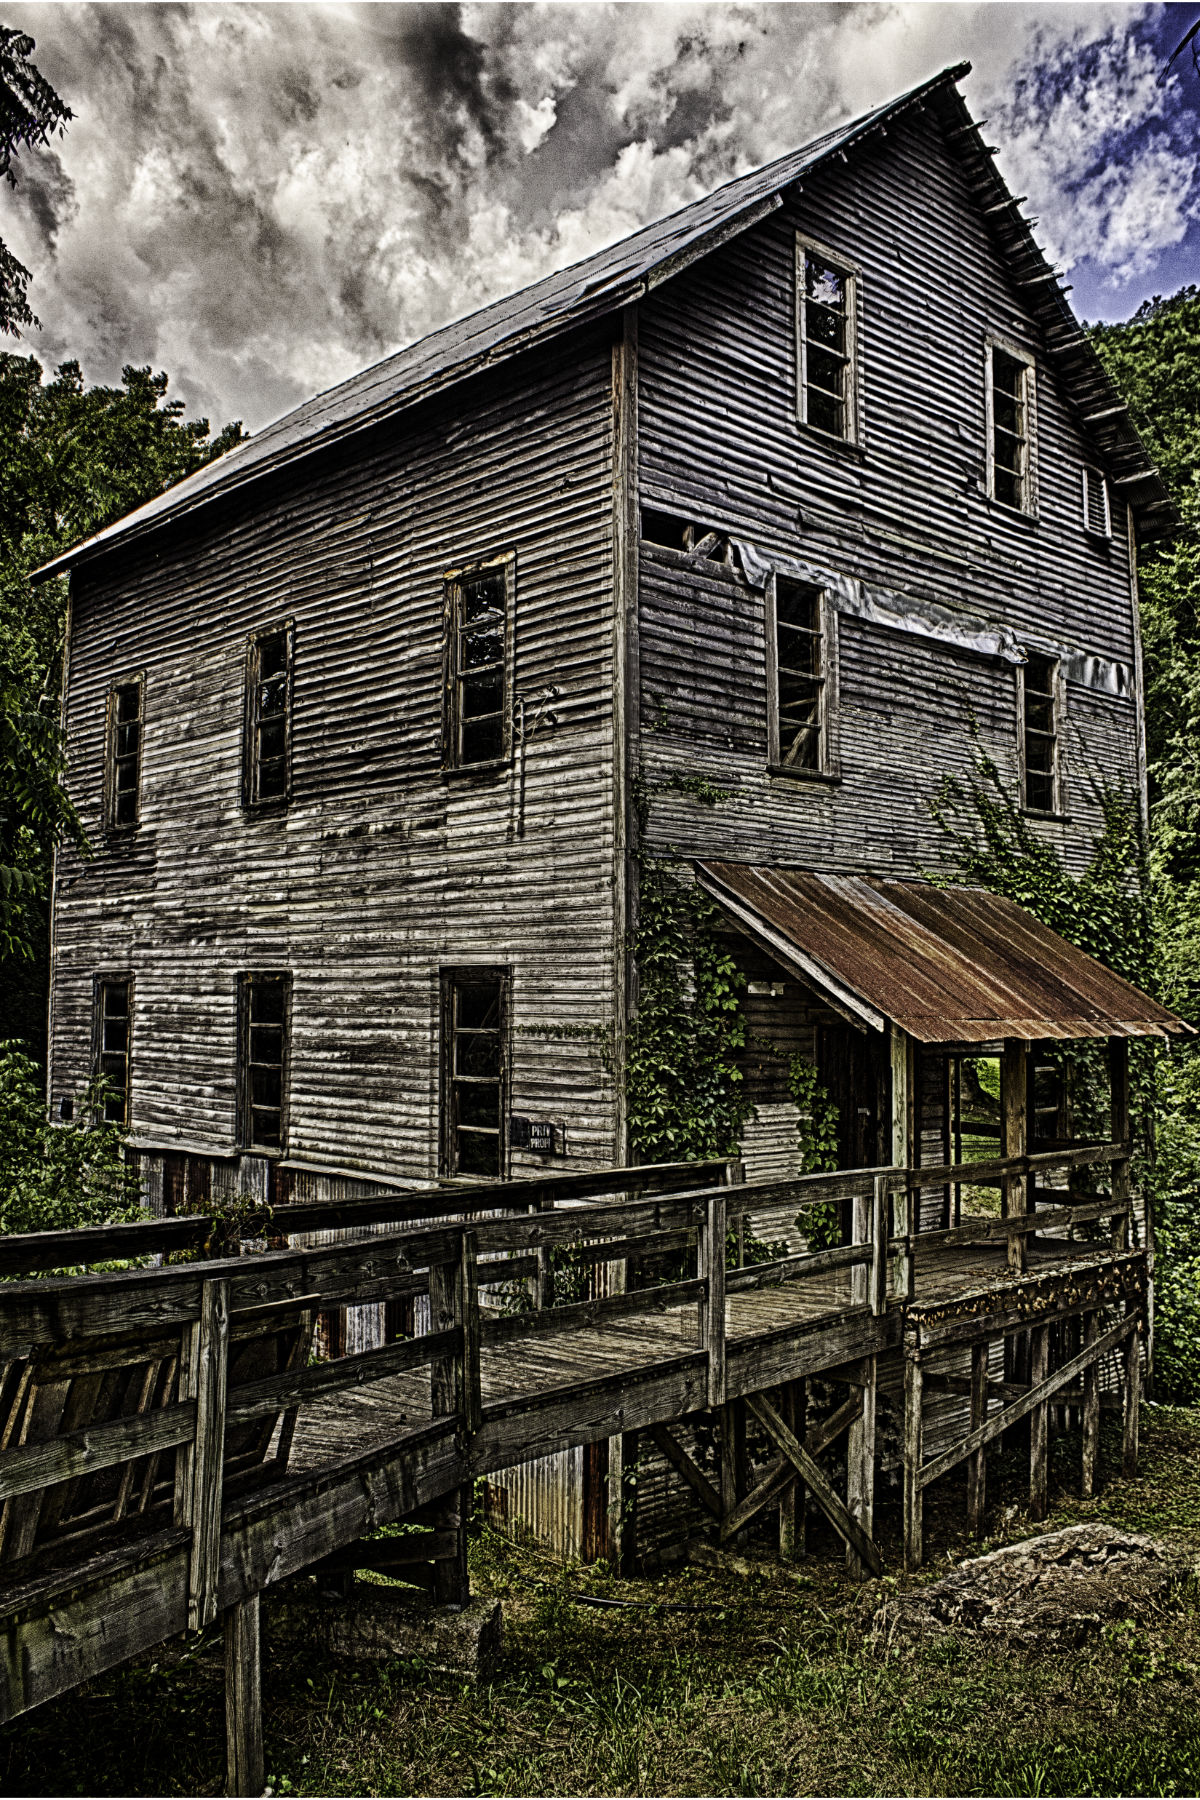 The old wilburn mill in lawrence county.